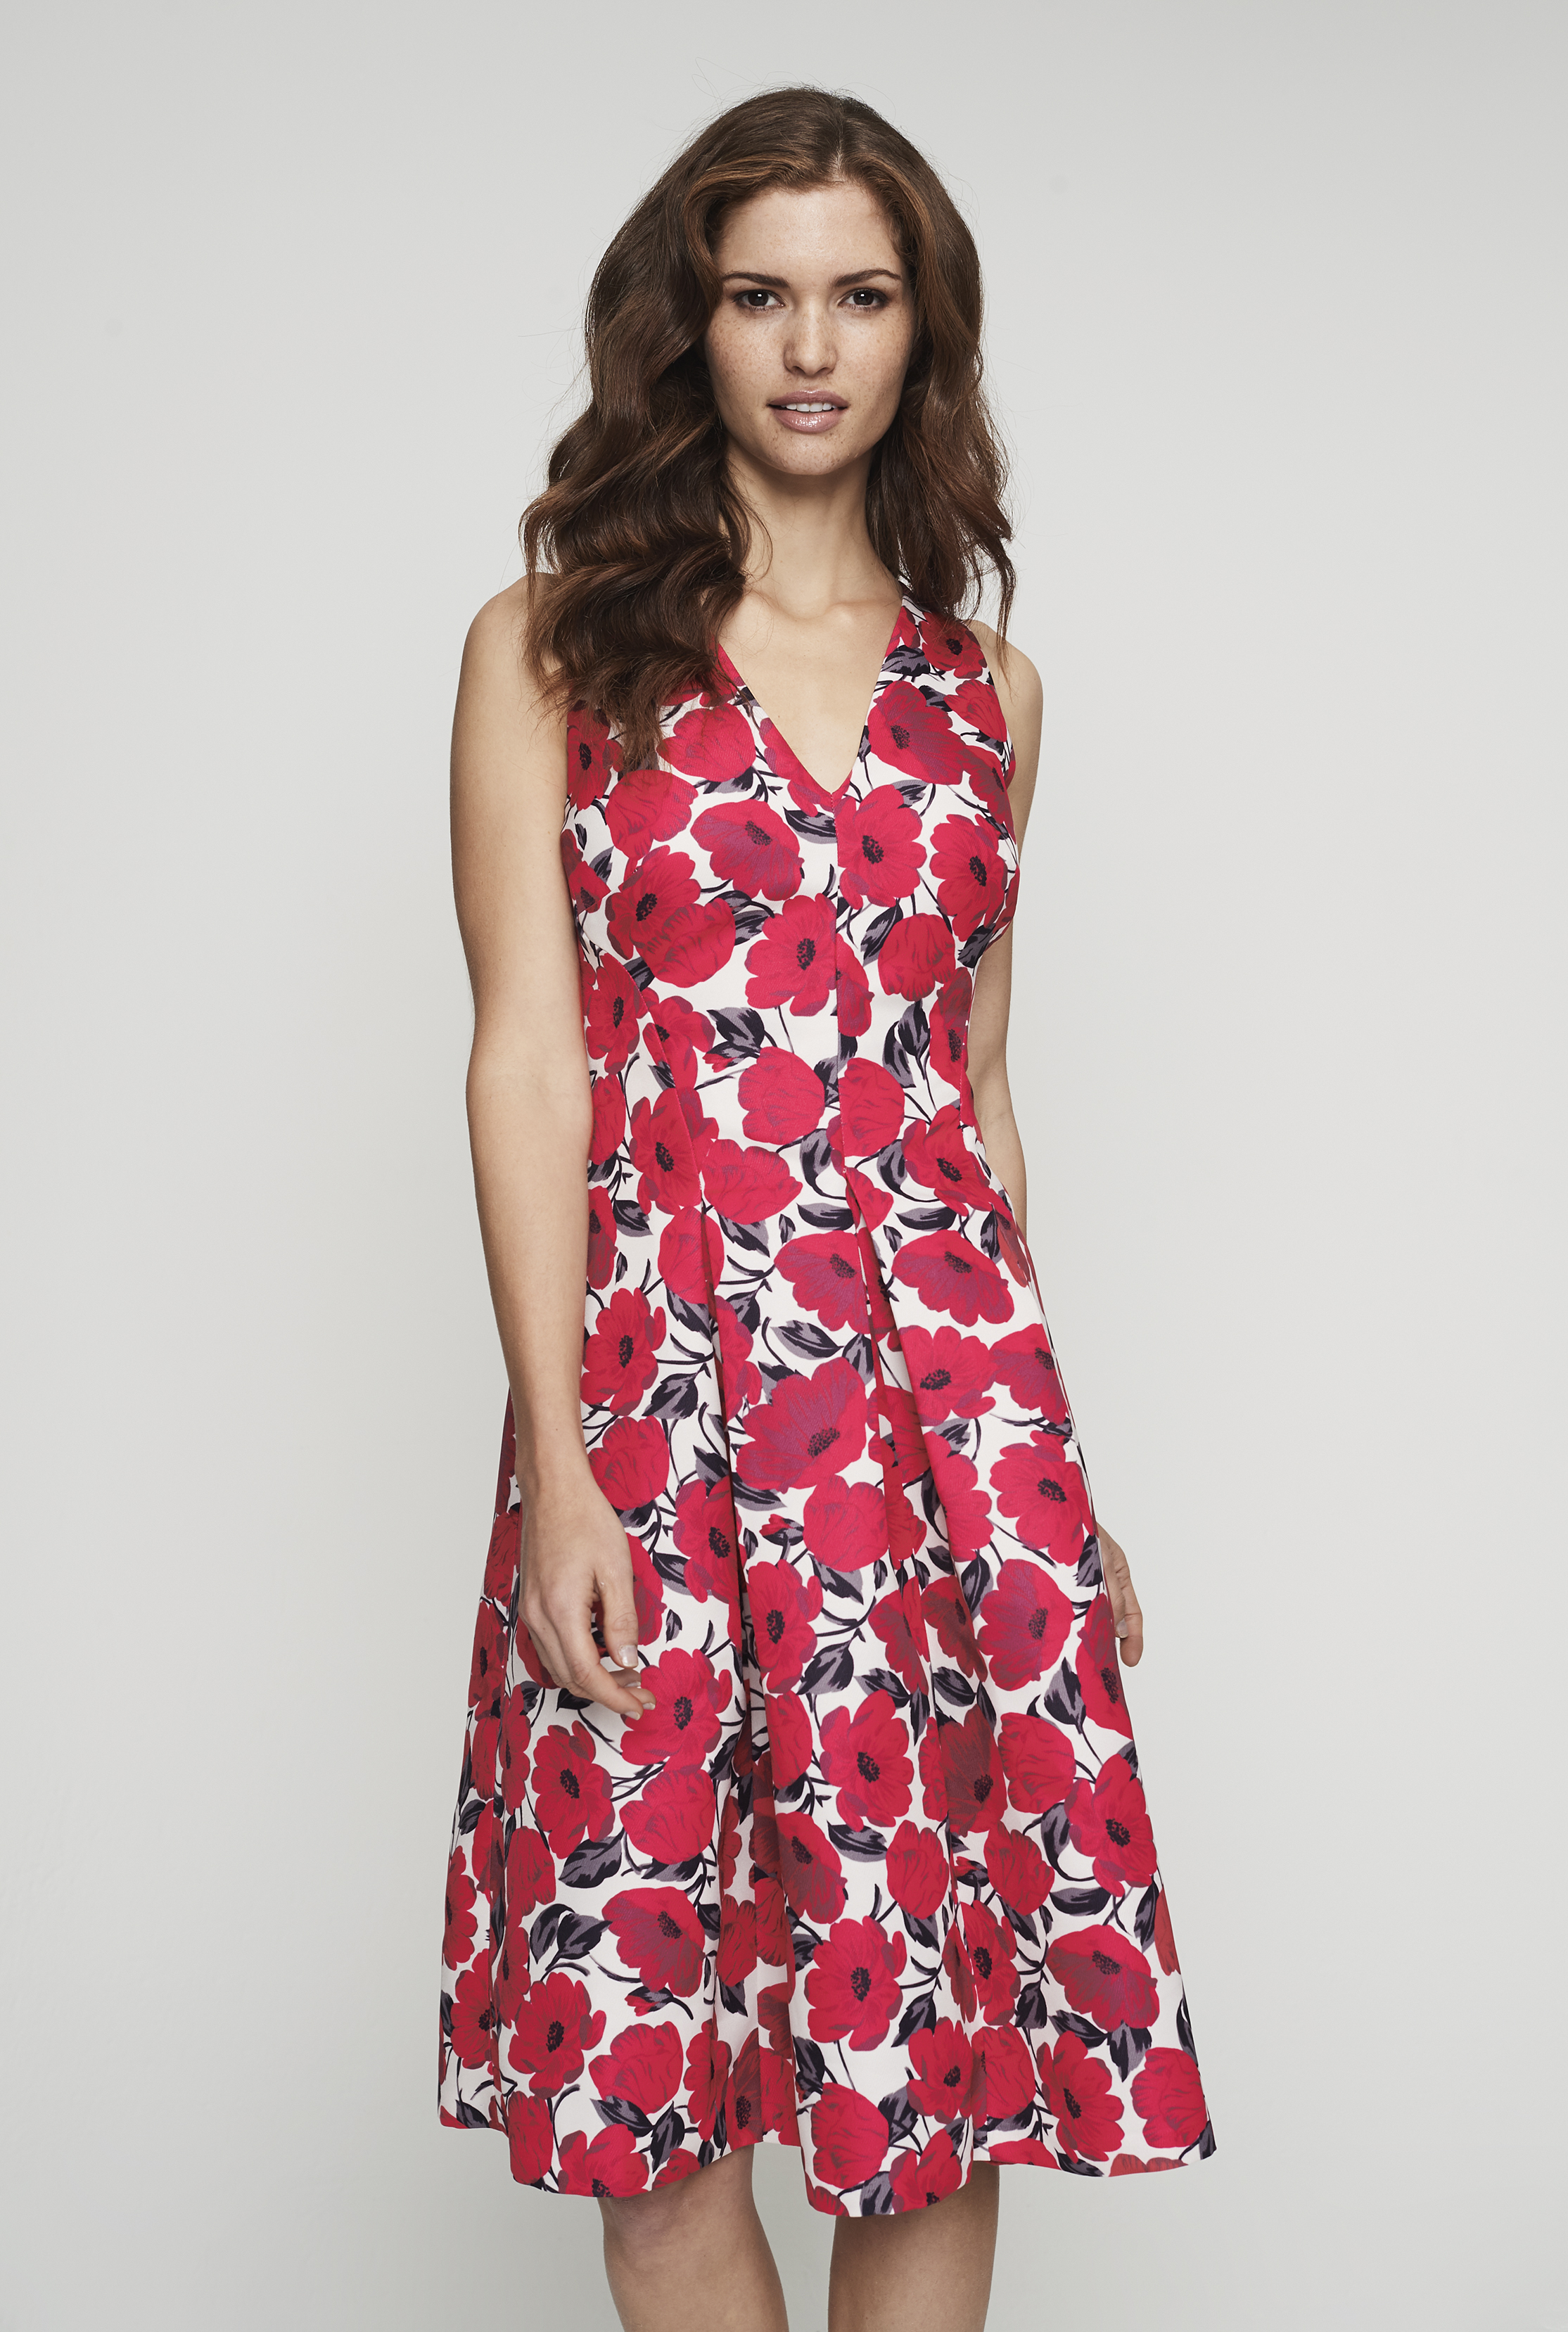 Poppy Print Fit and Flare Dress